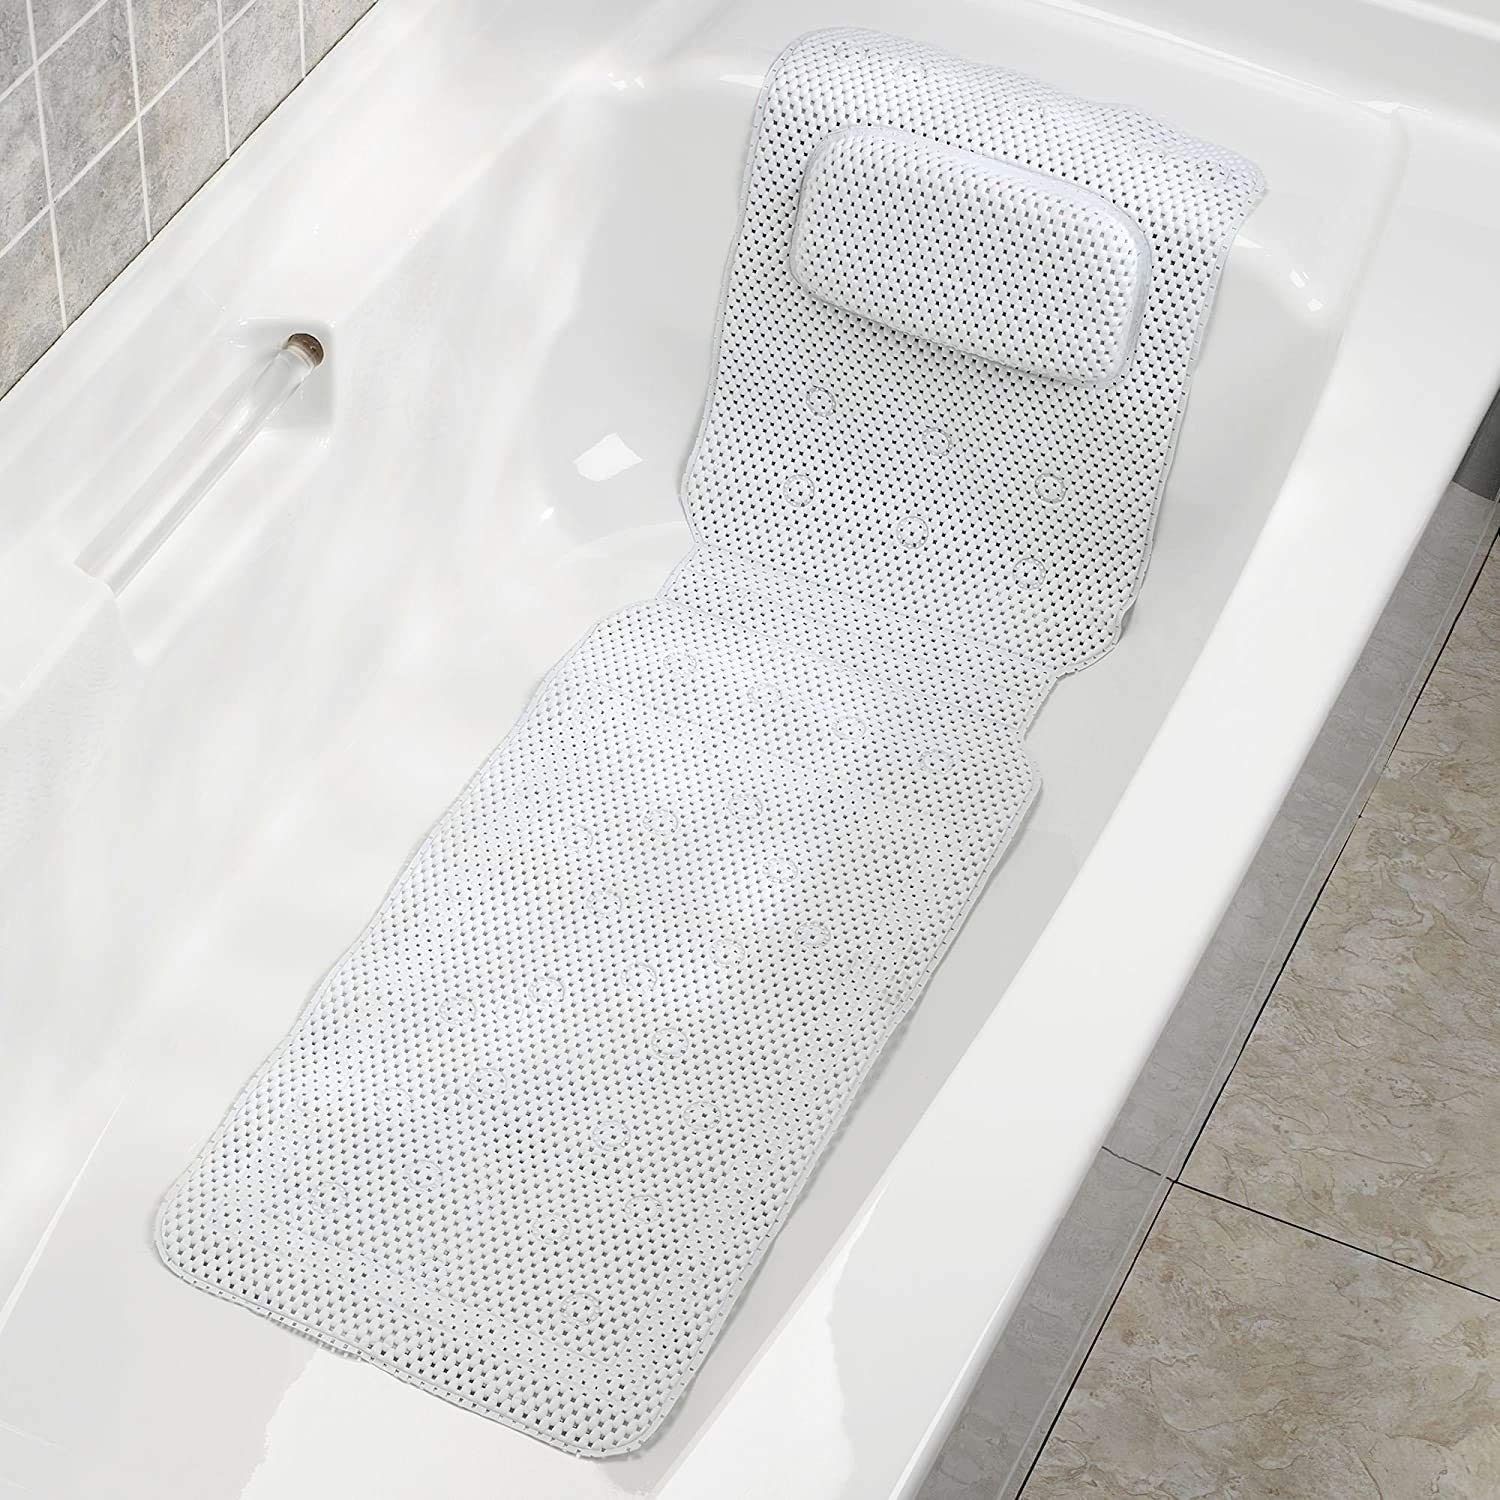 White 36 x 125cm Long Bath Mat With Pillow Home Flair In Shower or Bath White Cushioned Safety Non Slip Anti Mould Mats For The Bathroom